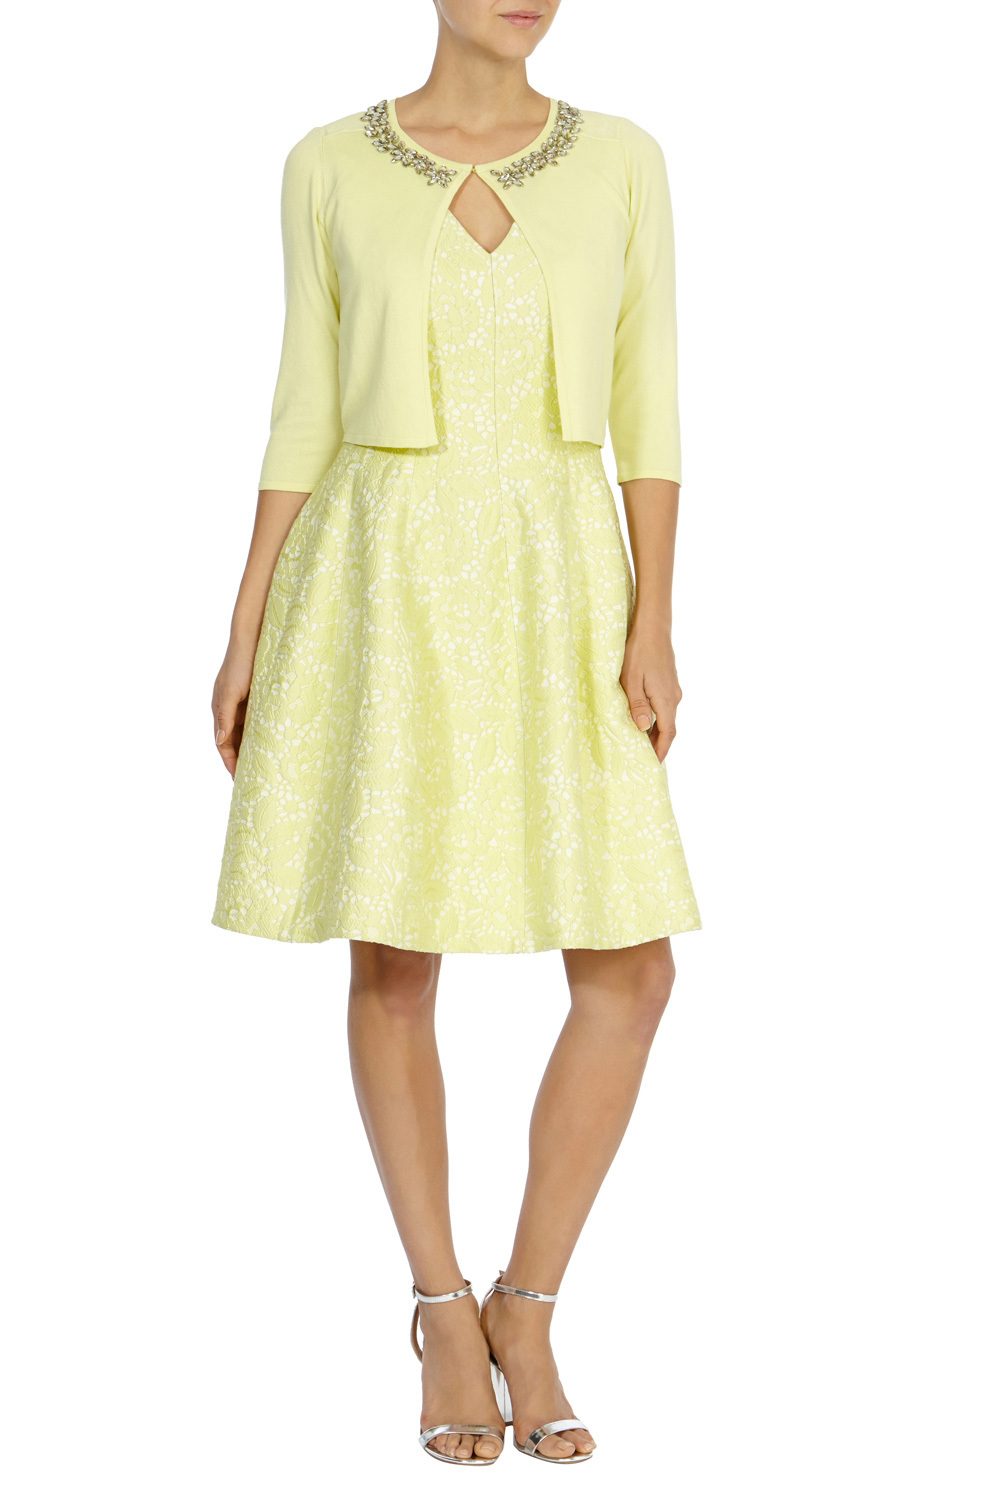 Chrissi Embellished Cover Up - neckline: round neck; pattern: plain; style: bolero/shrug; length: cropped; predominant colour: primrose yellow; fibres: viscose/rayon - 100%; occasions: occasion; fit: slim fit; sleeve length: 3/4 length; sleeve style: standard; texture group: knits/crochet; pattern type: knitted - fine stitch; embellishment: sequins; season: a/w 2015; wardrobe: event